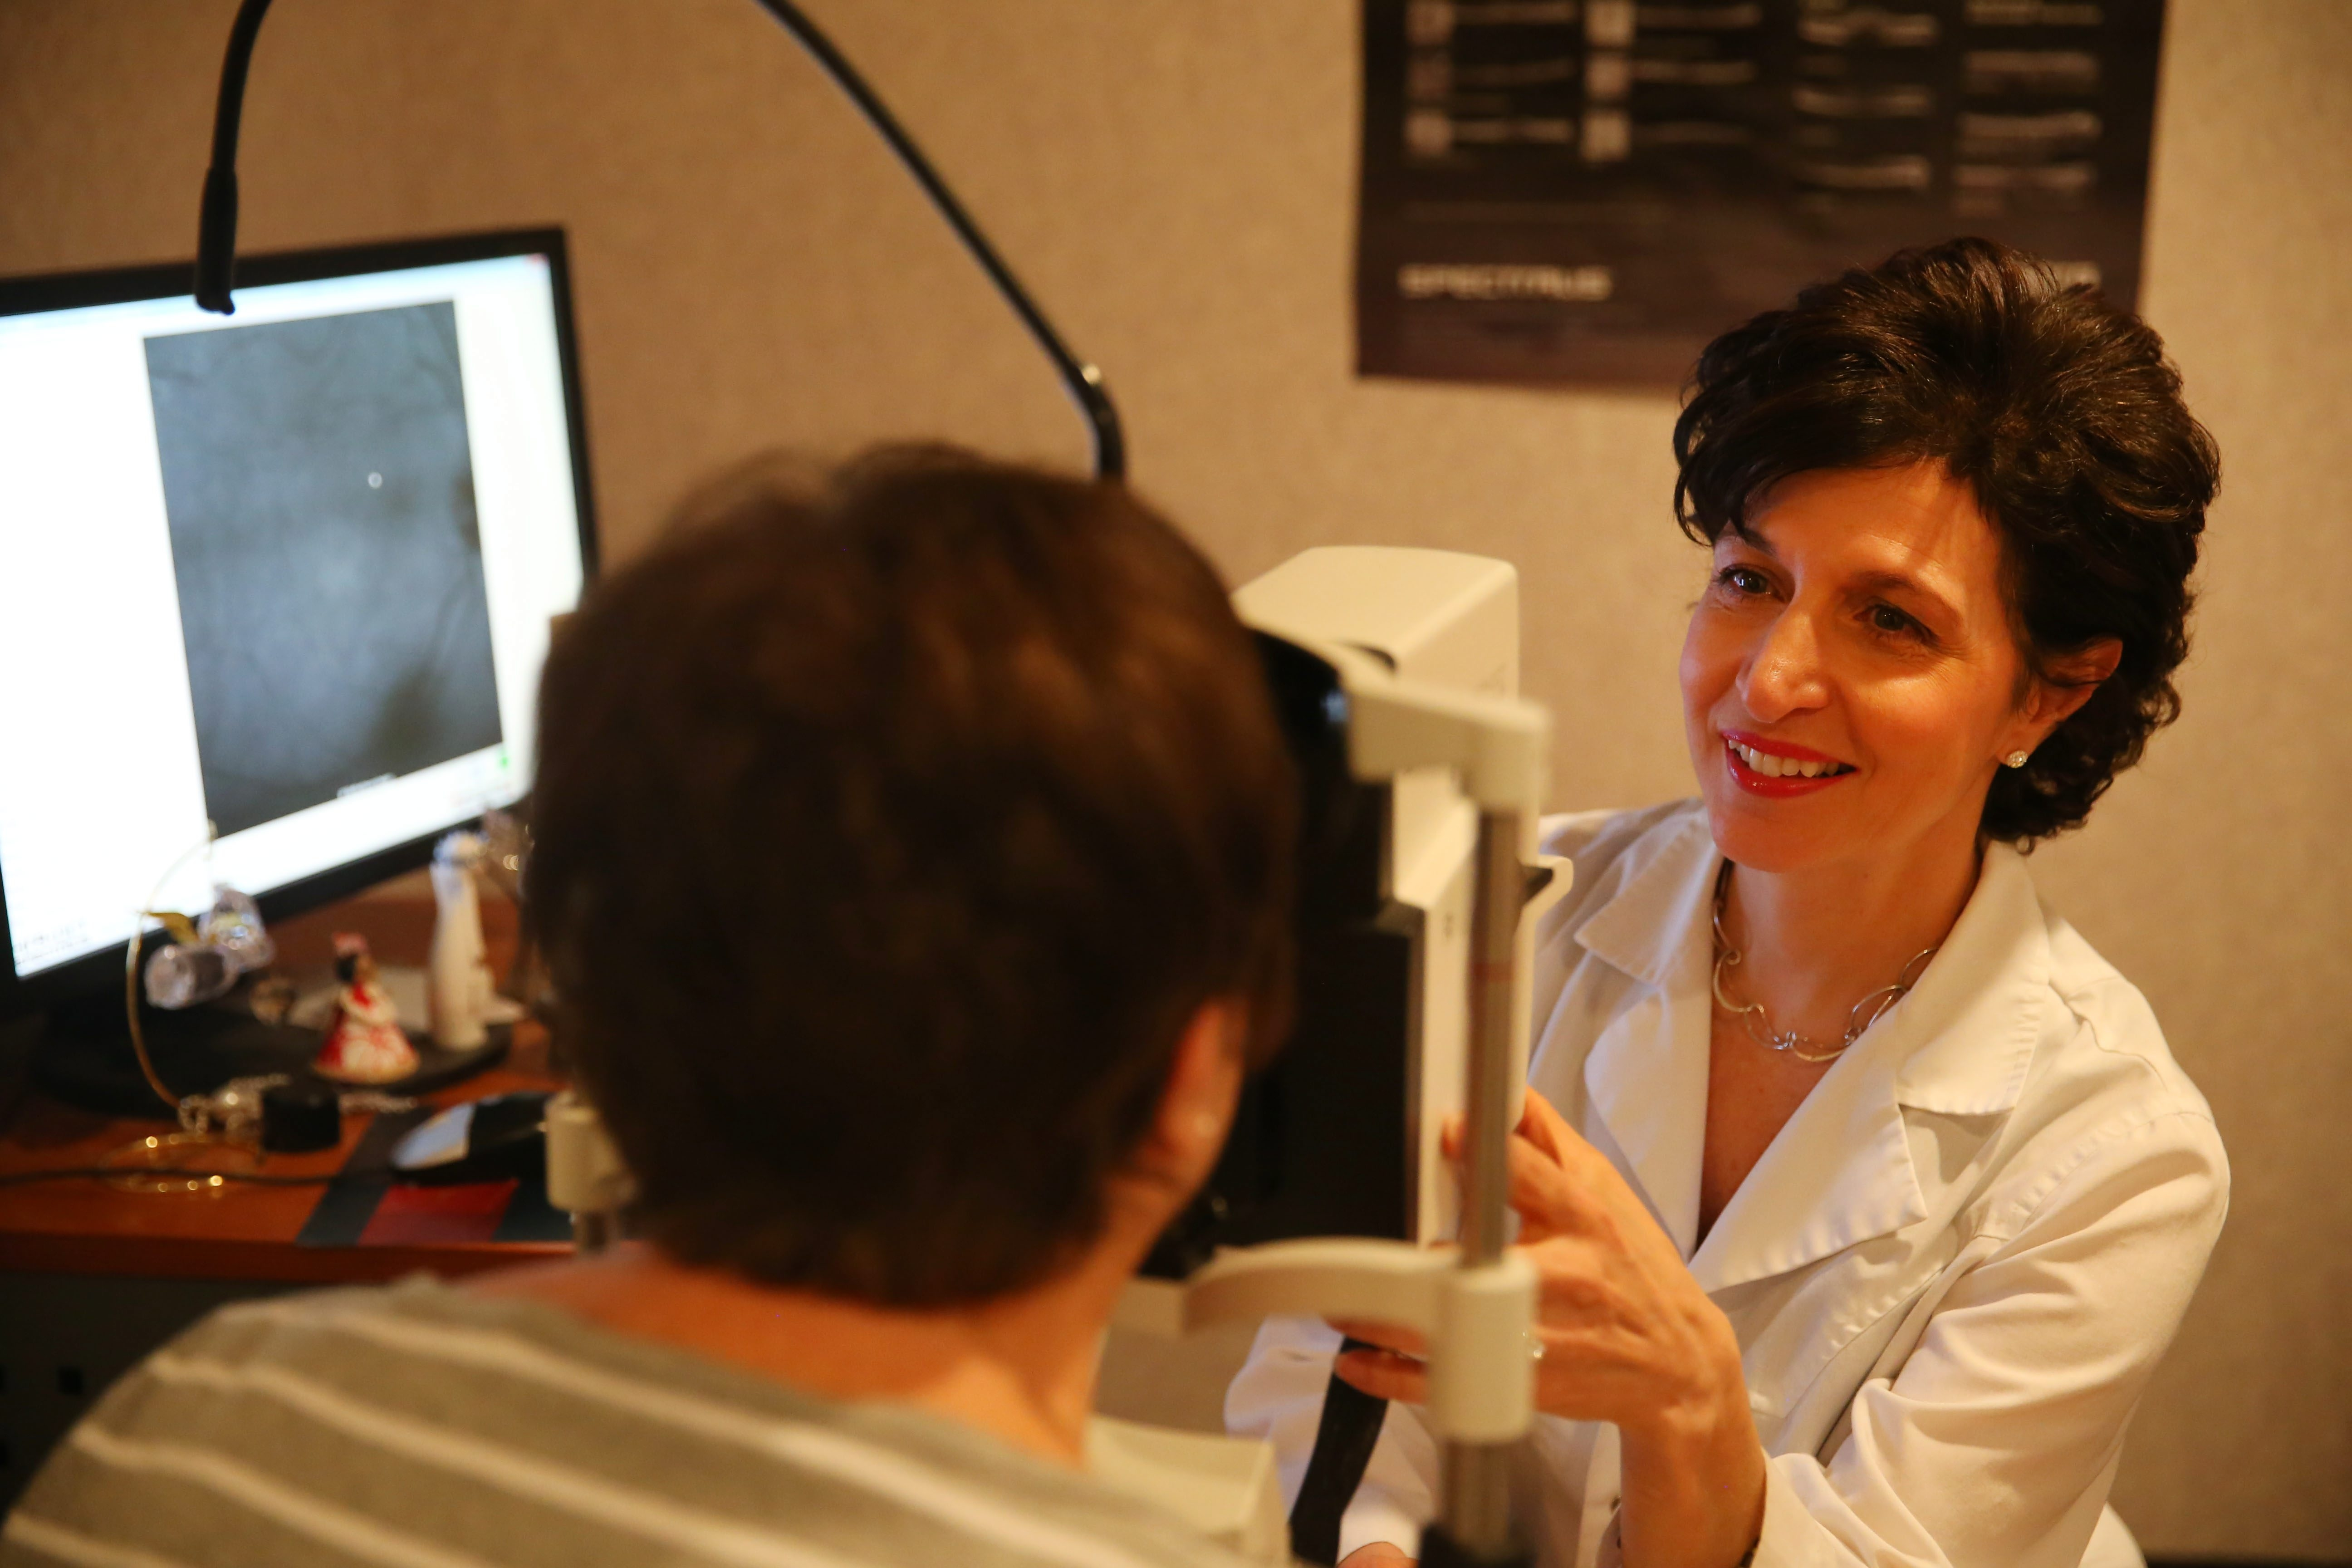 """""""As people age, regular eye exams are important because they help catch diseases as early as possible, when they're in the most treatable stages."""" – Dr. Saralyn Notaro Rietz, an ophthalmologist whose practice, Back of the Eye MD, specializes in retinal disease"""